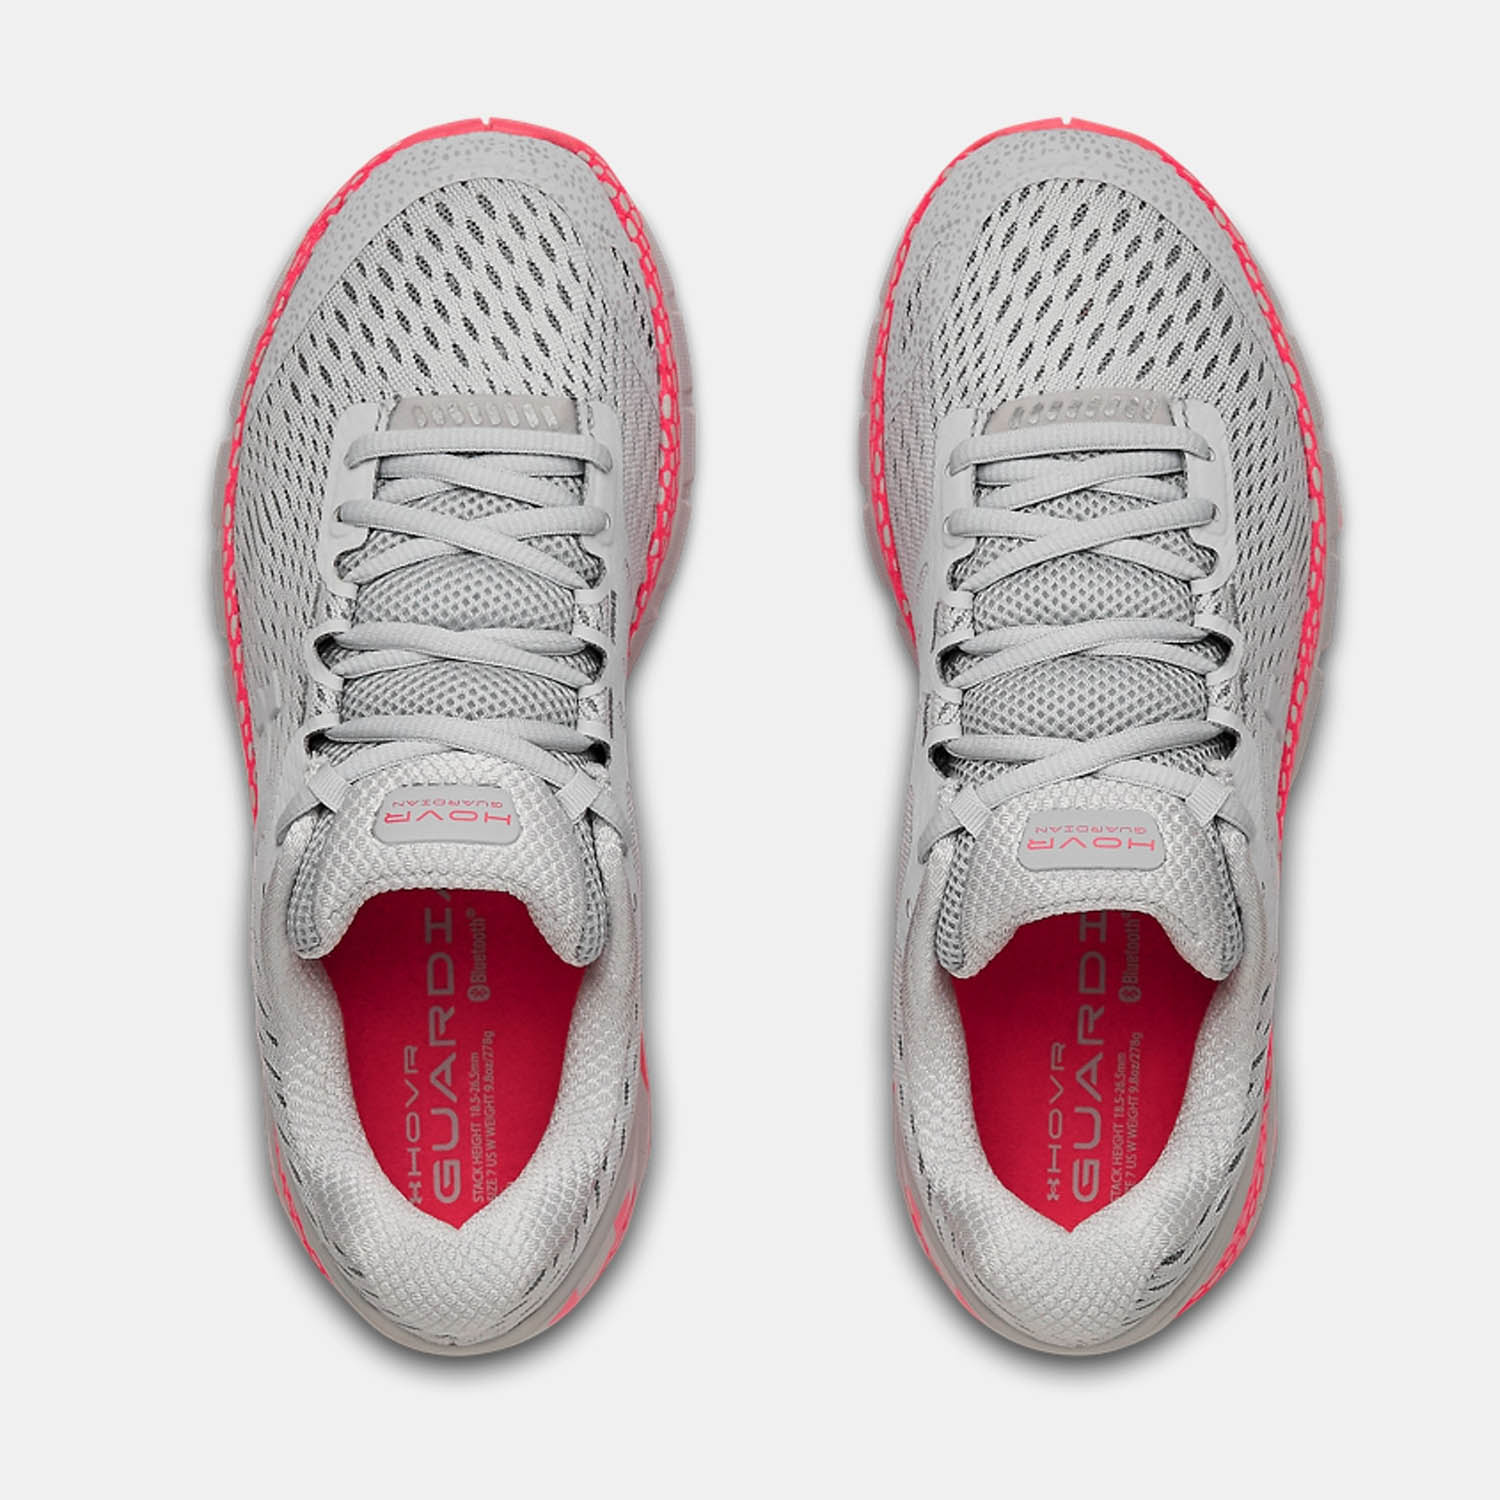 Under Armour Hovr Guardian 2 - Halo Gray/Cerise